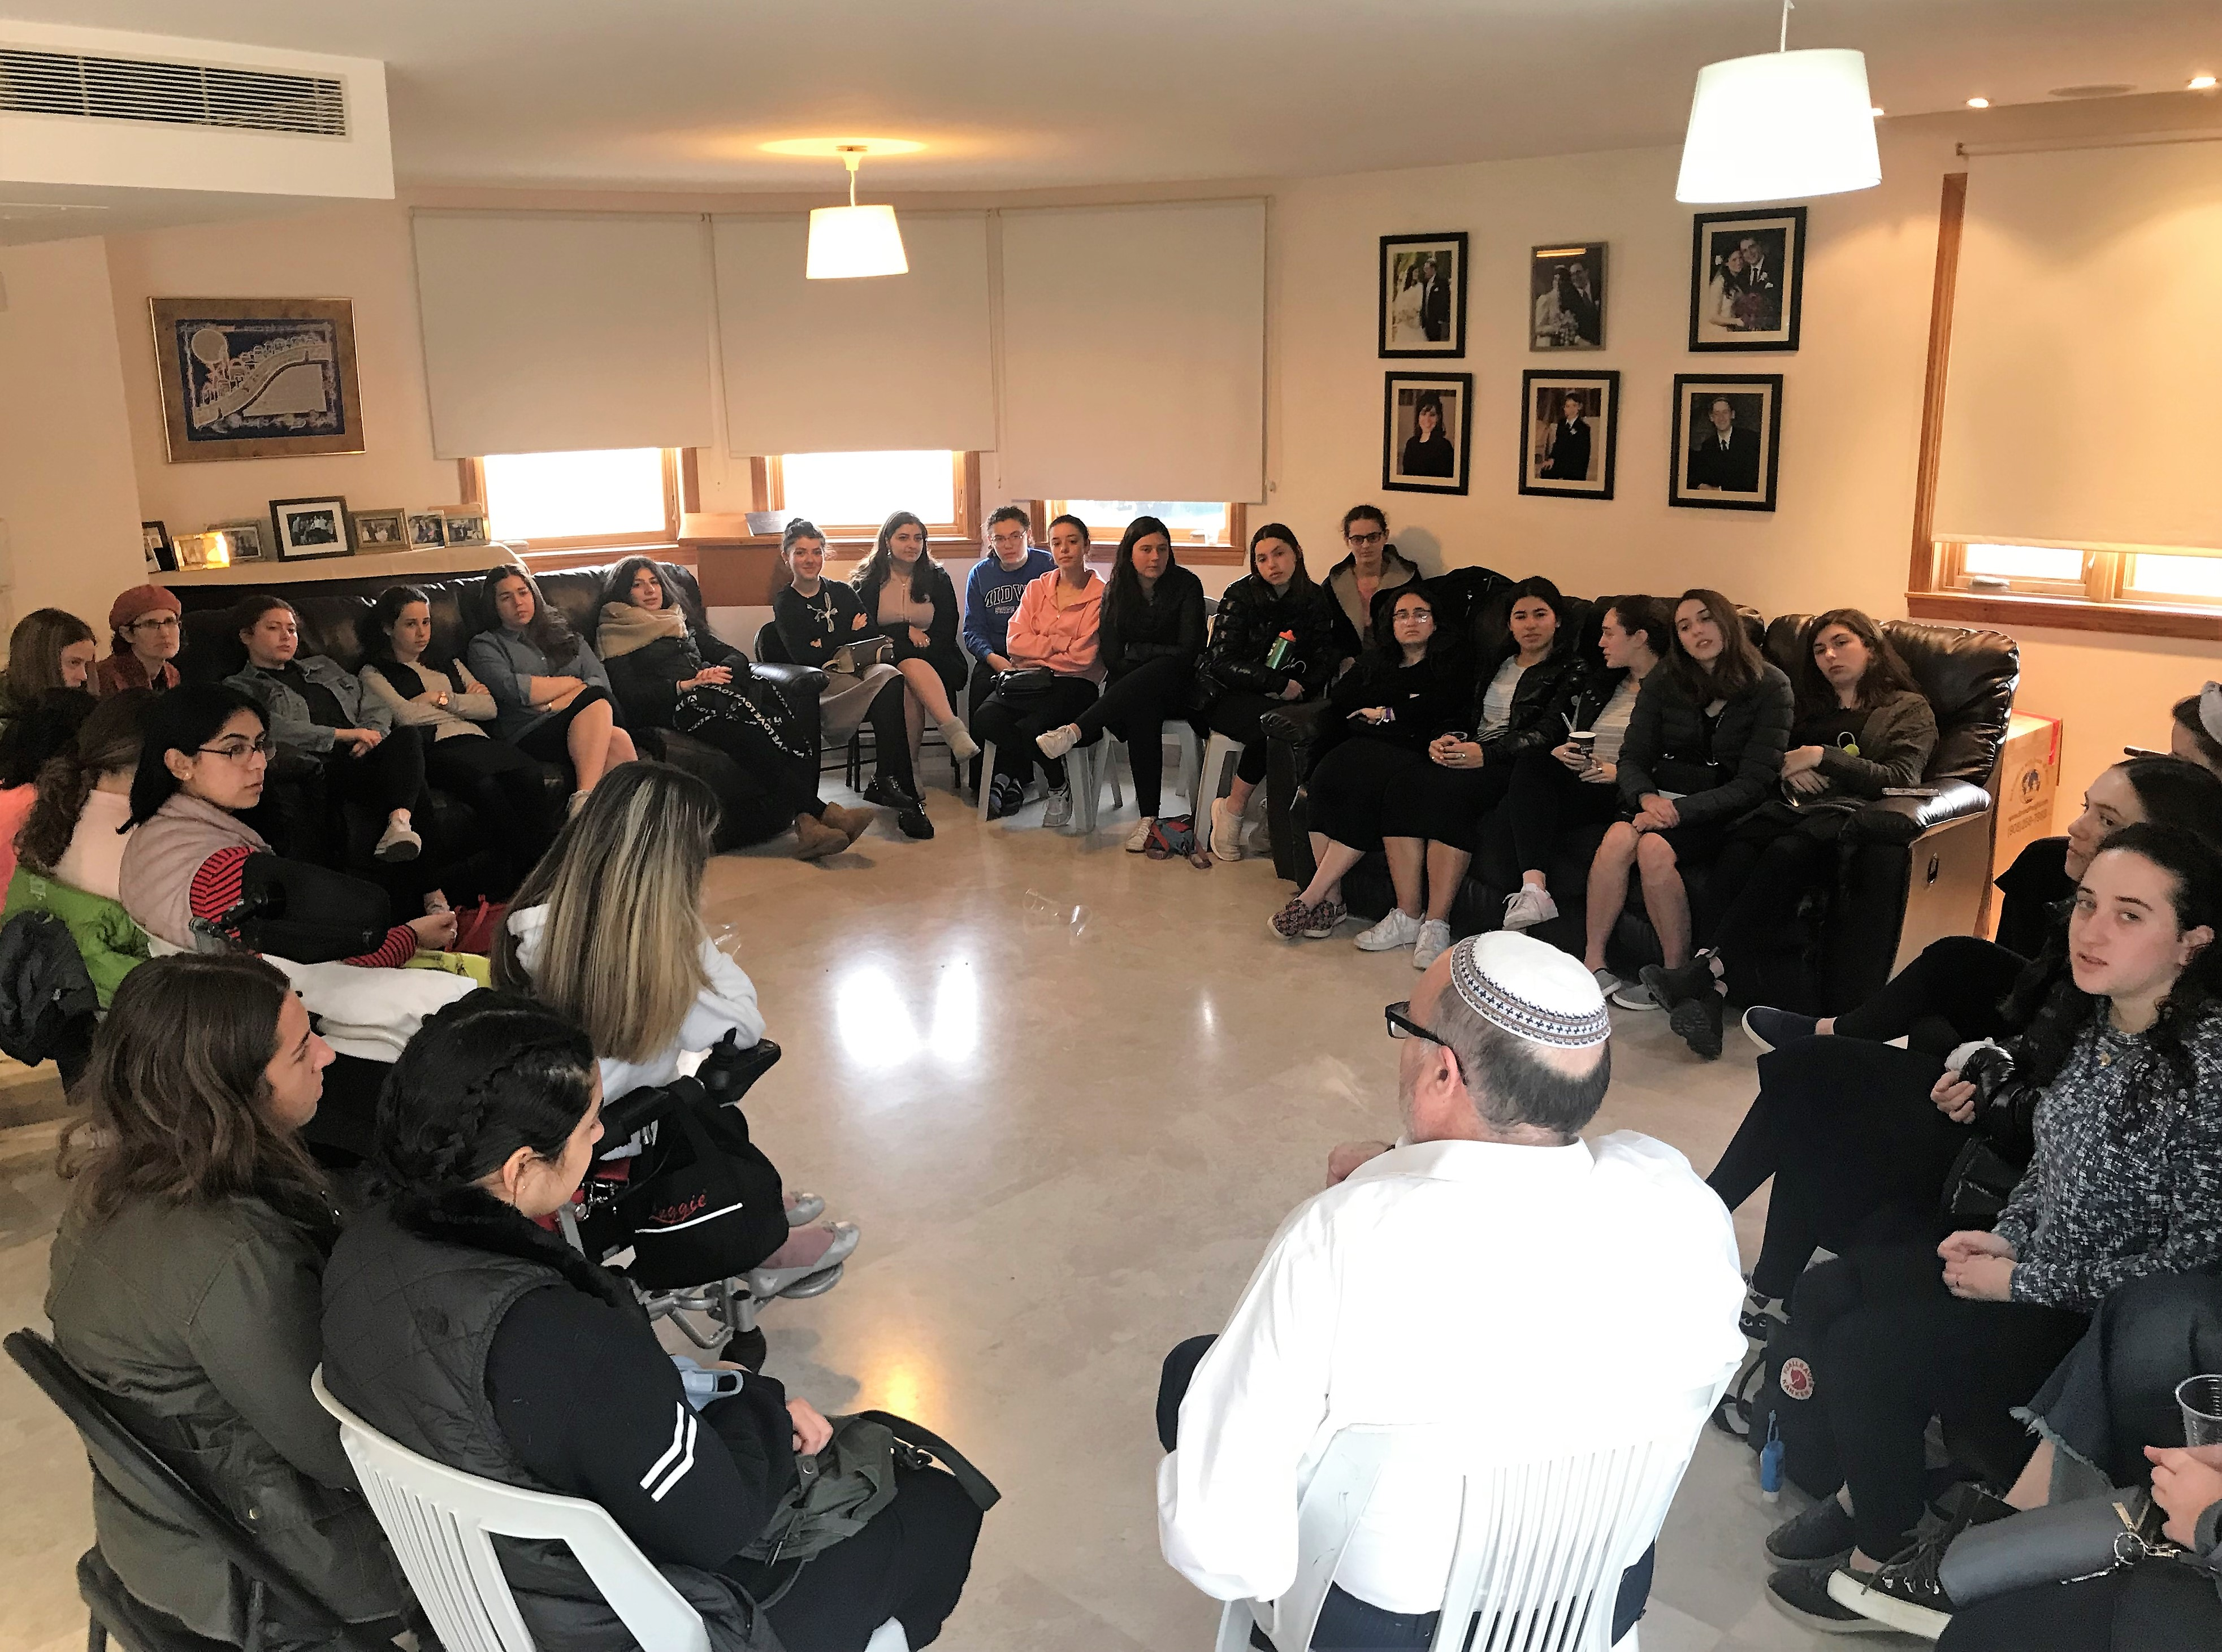 giving shiur